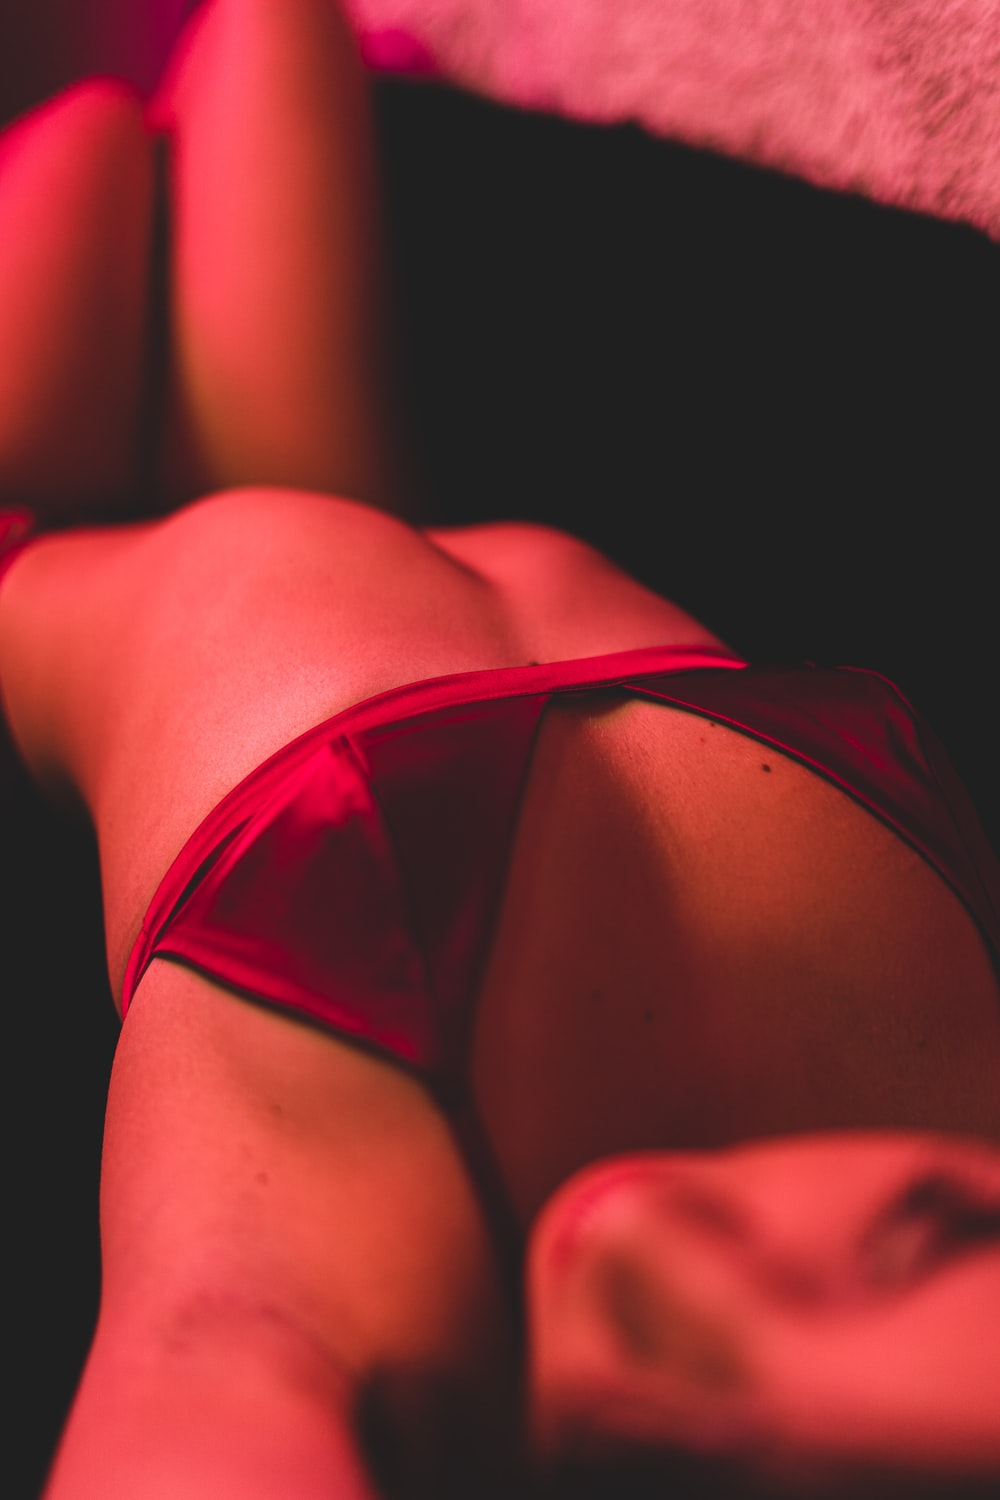 woman in red panty lying on black textile